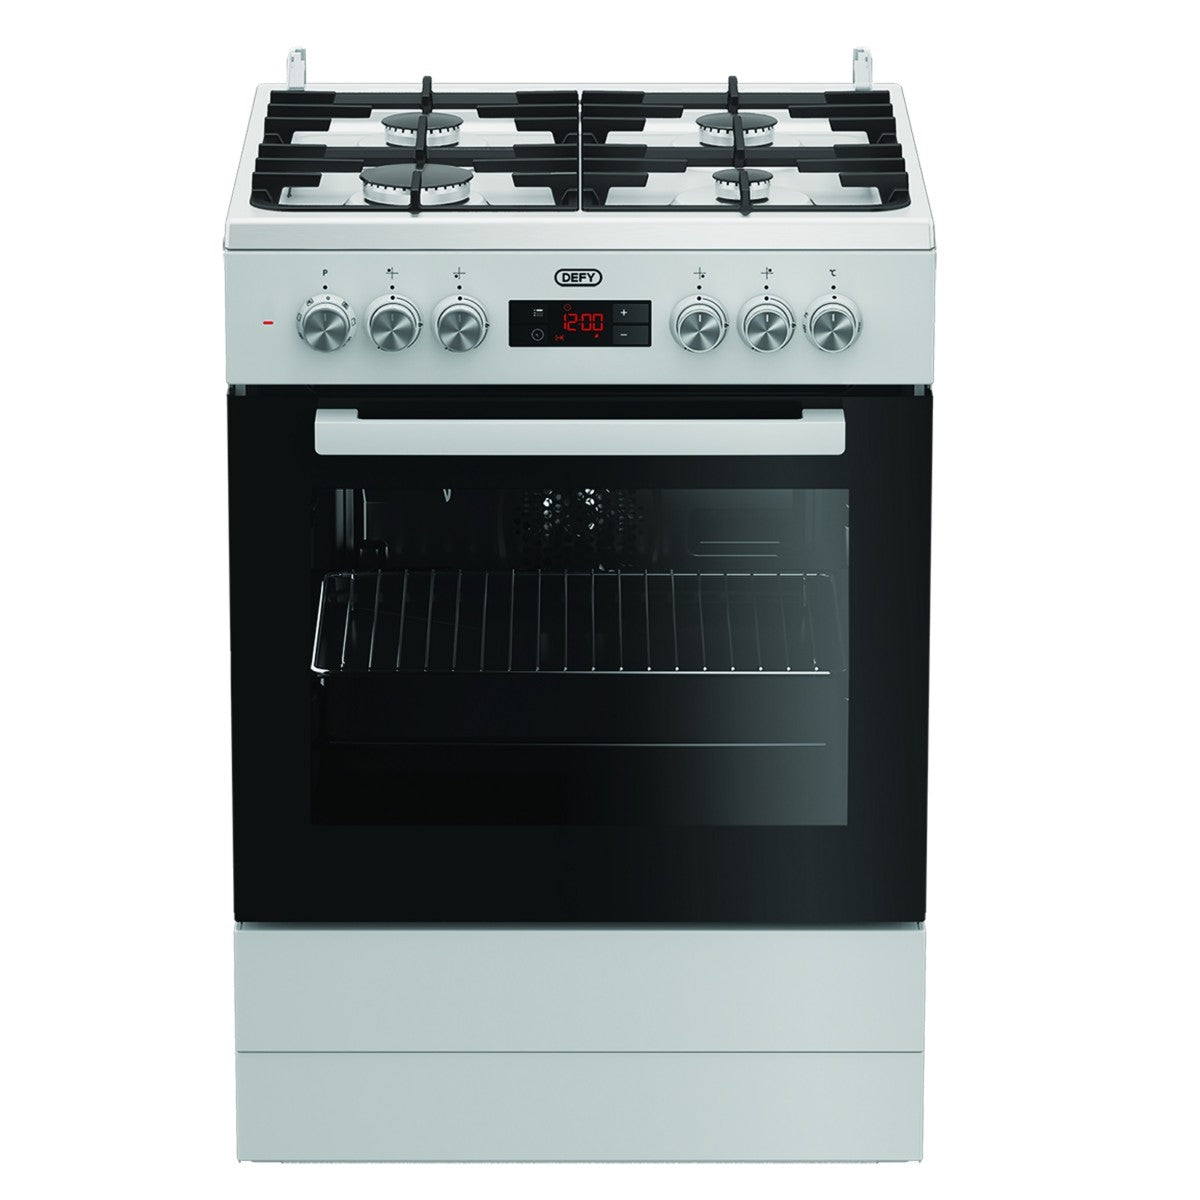 DGS182 GAS/ELECTRIC STOVE DEFY 4 BURNER M/F W